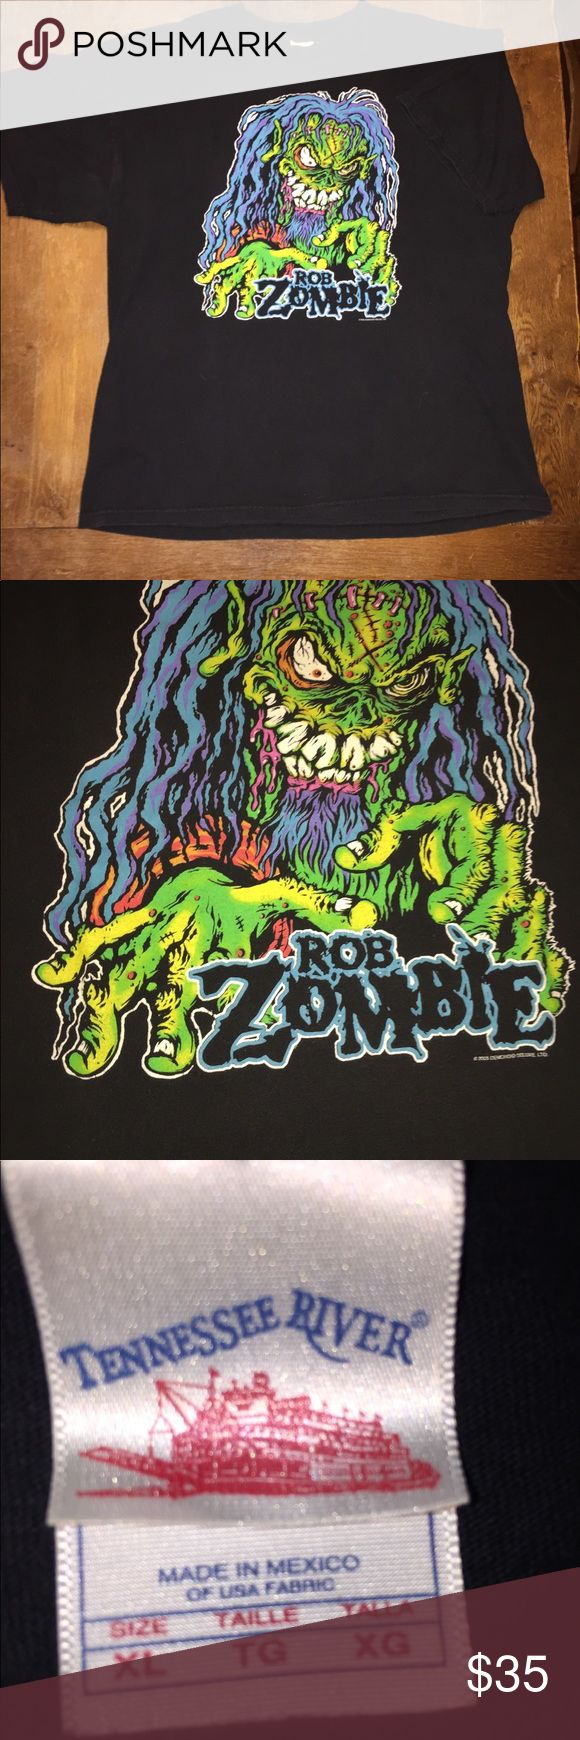 Rob Zombie Vintage Concert T In great condition Tennesee River Shirts Tees - Short Sleeve